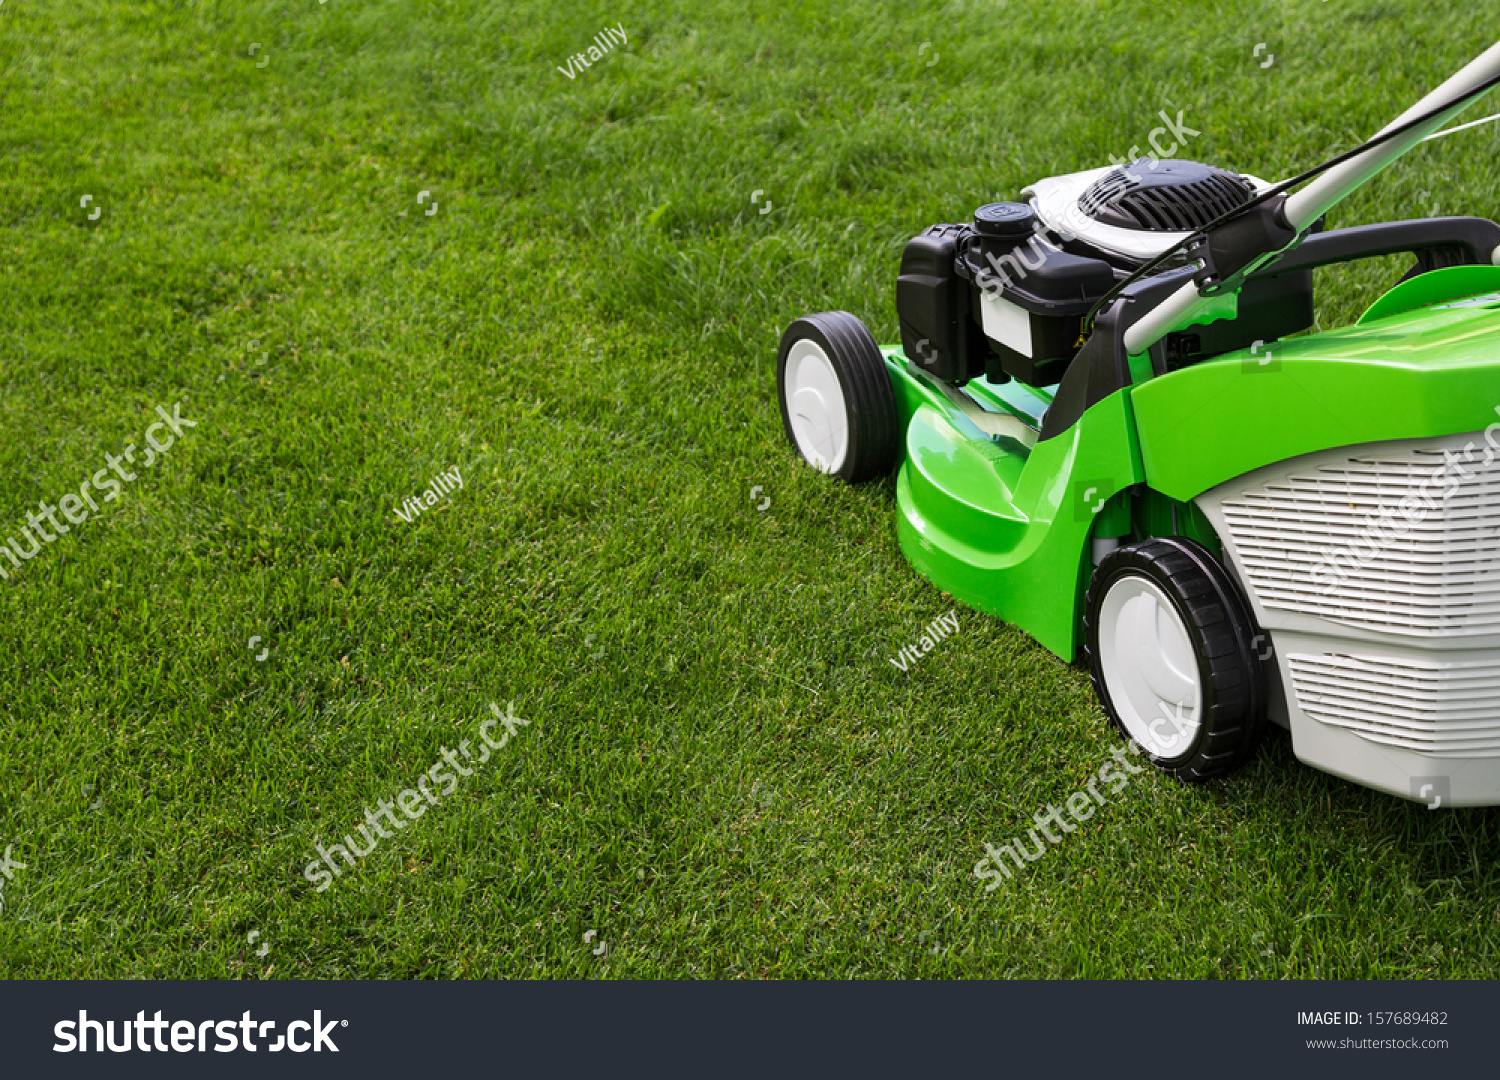 Lawn Mower London Ontario Outdoor Shot Green Lawnmower Stock Photo Edit Now 157689482